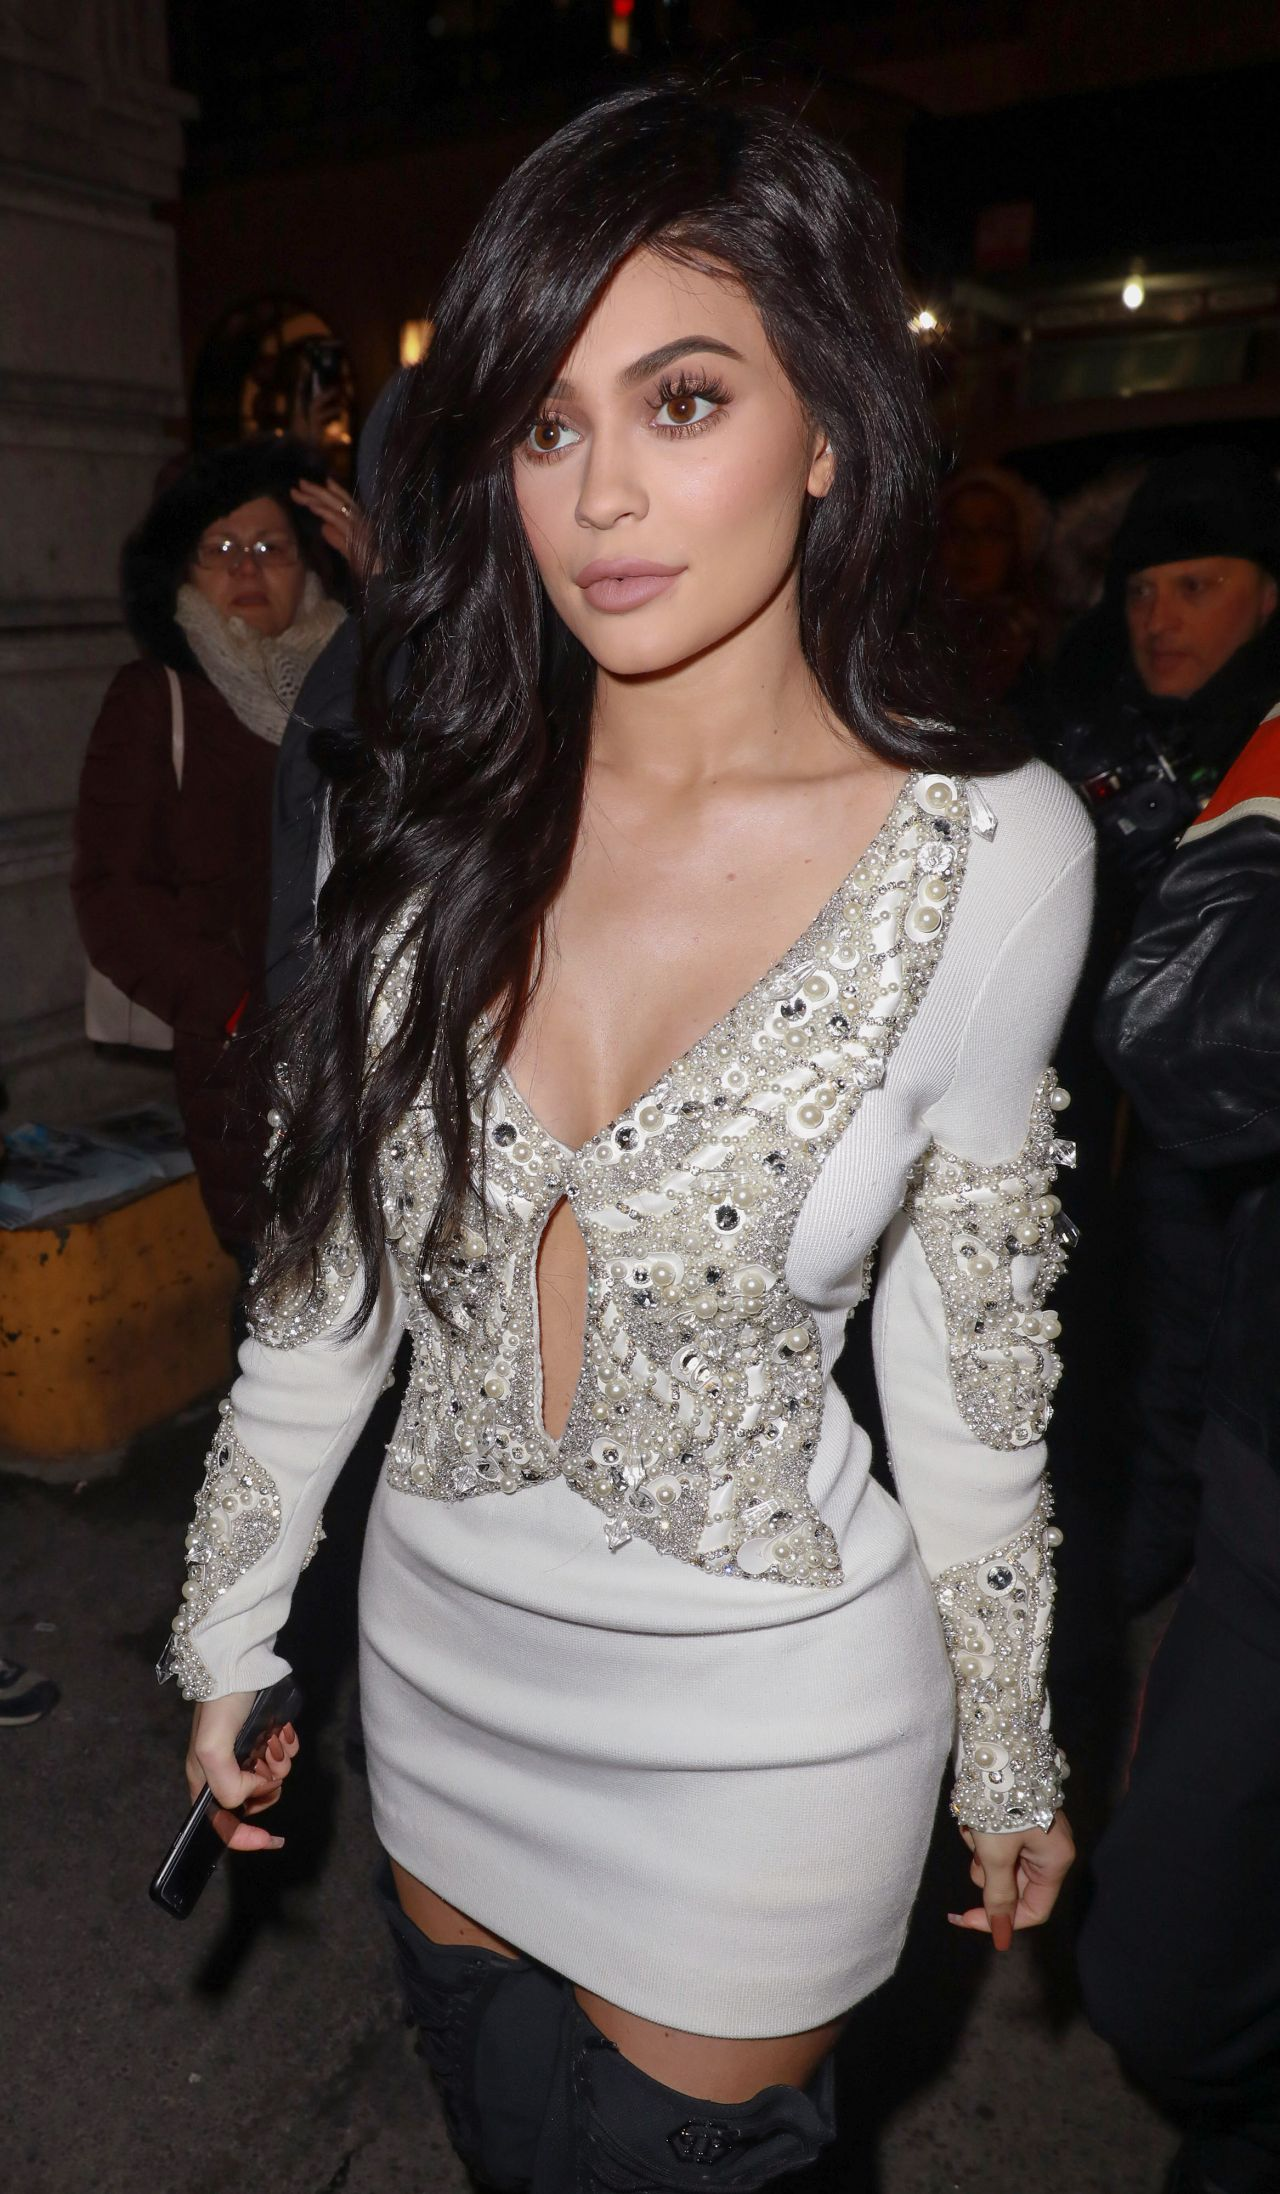 Kylie Jenner At The Philip Plein Fashion Show In New York